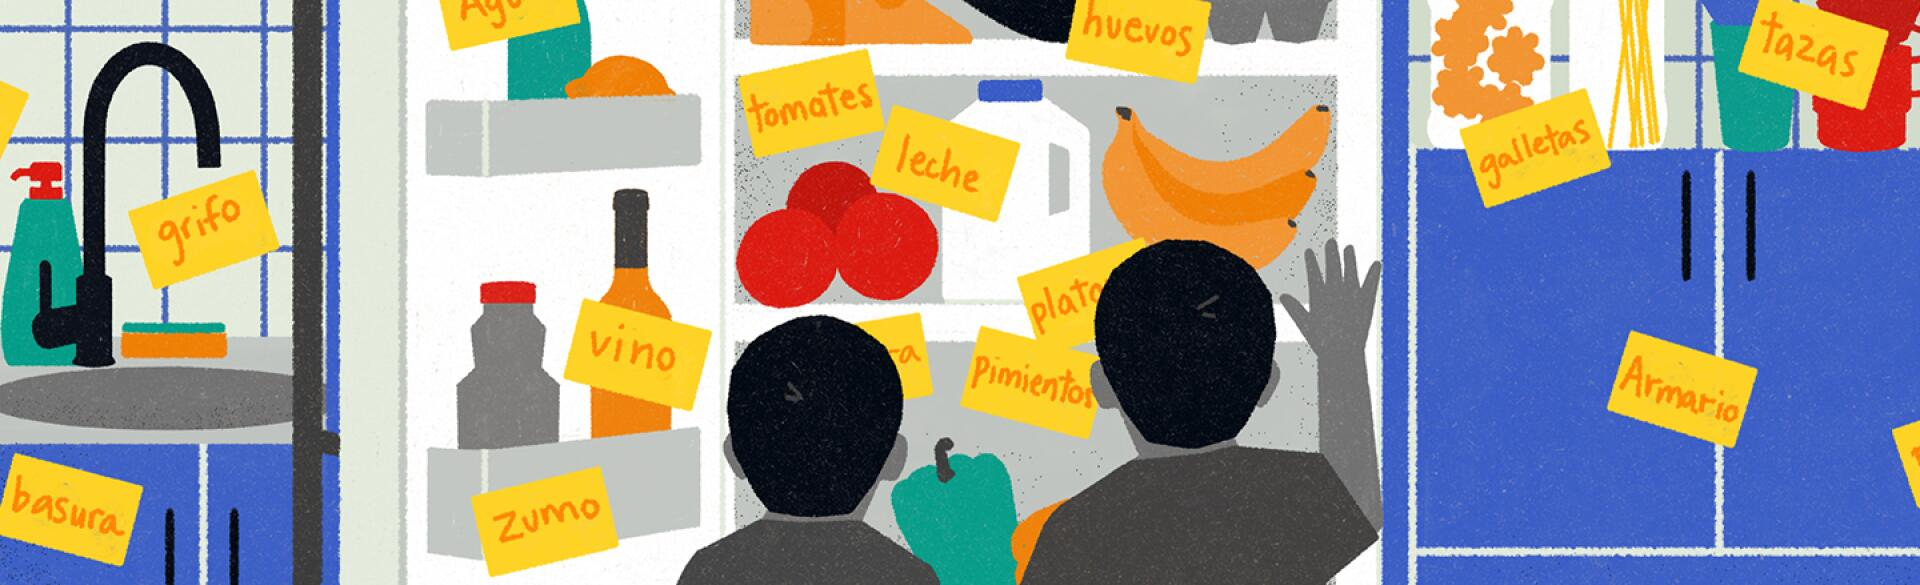 illustration_of_kids_looking_at_fridge_with_spanish_words_over_items_by_maria_hergueta_1440x584.jpg